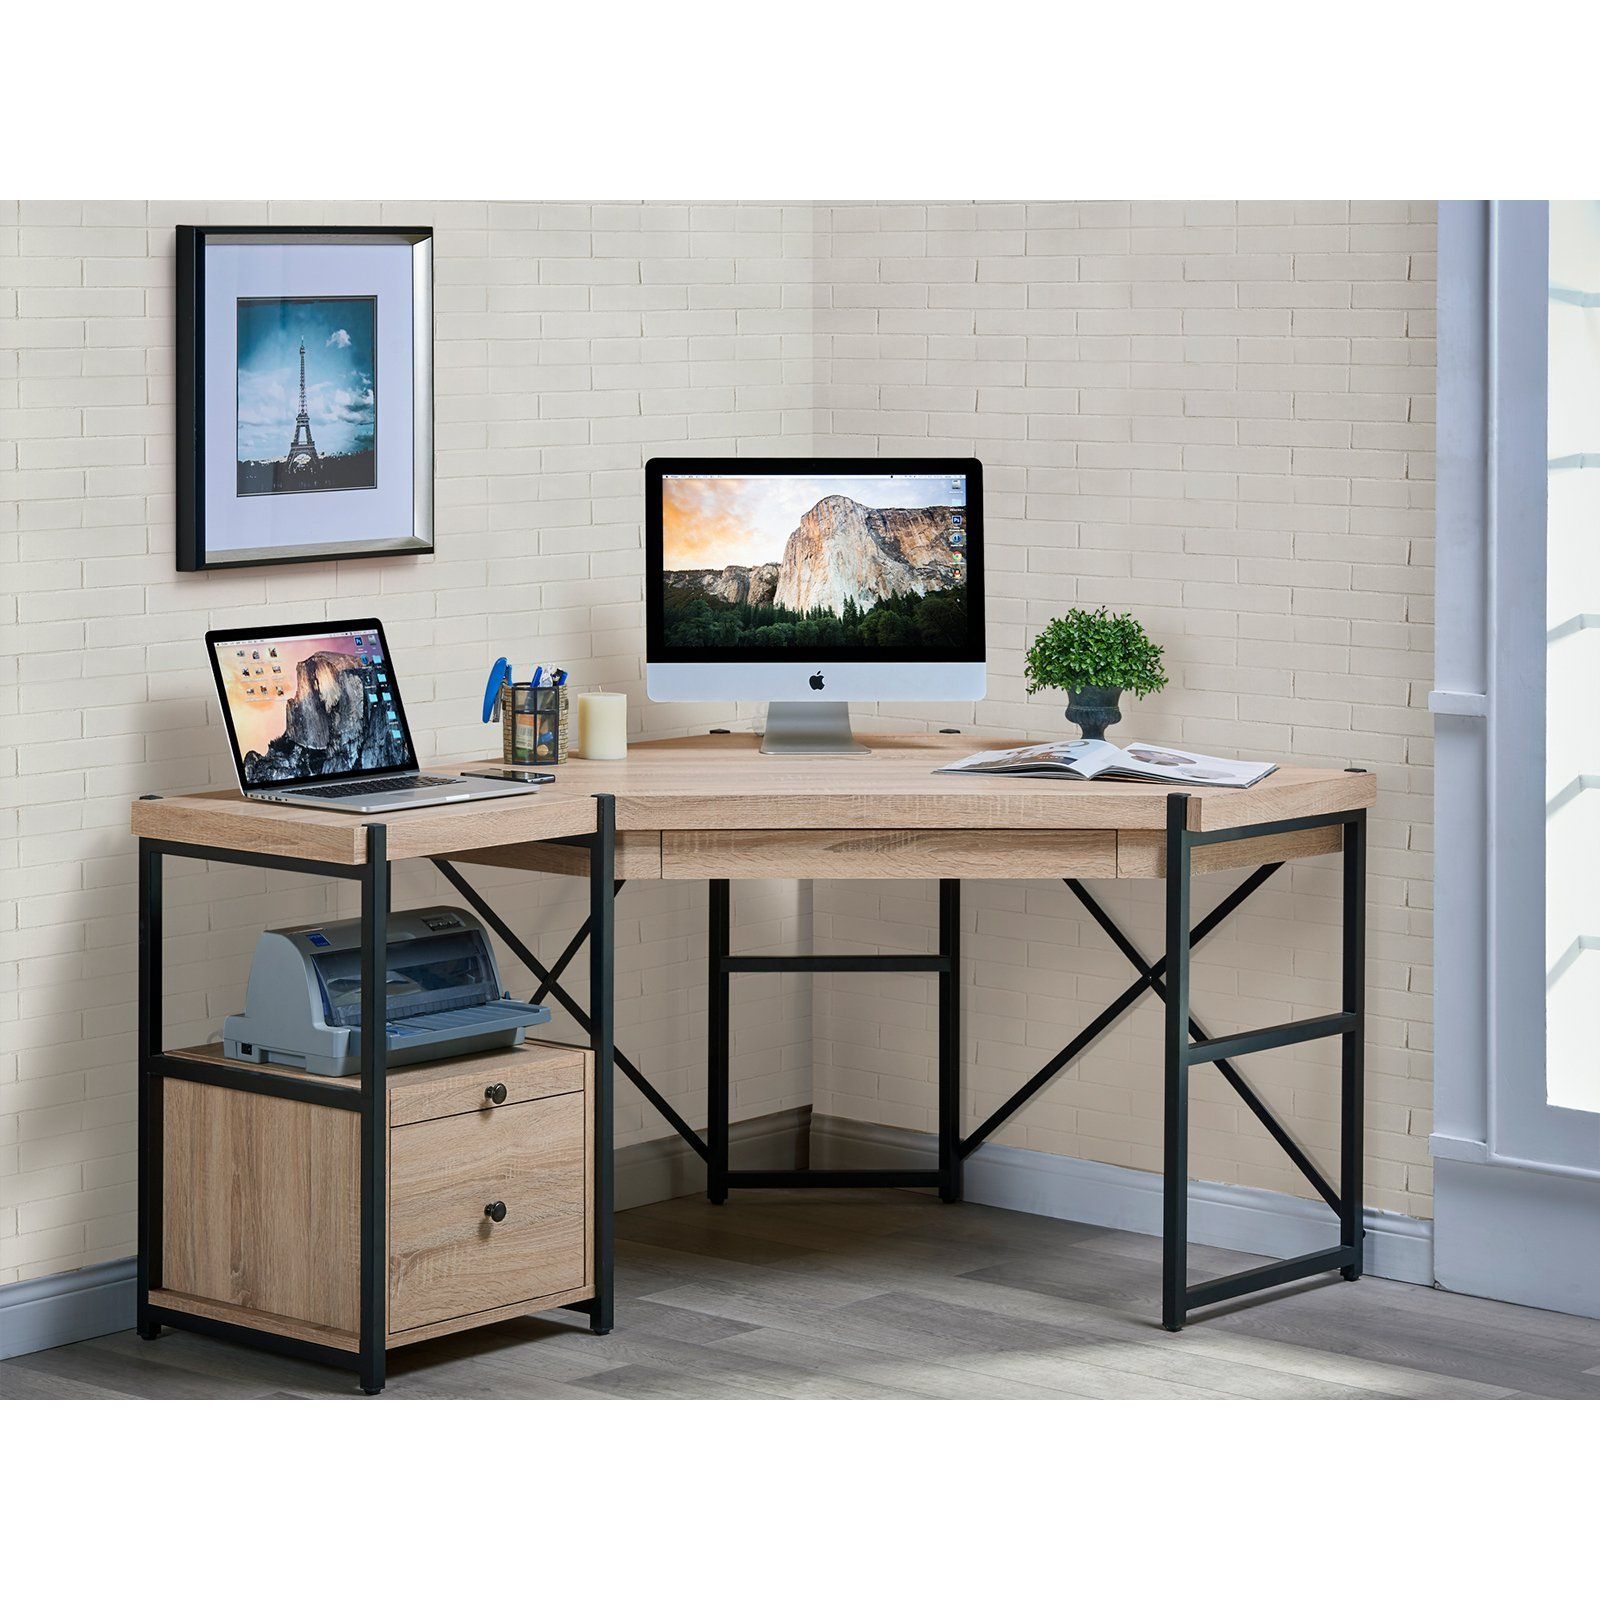 Julian Furniture Berlin Corner Desk The eye catching Julian Furniture Berlin Corner Desk not